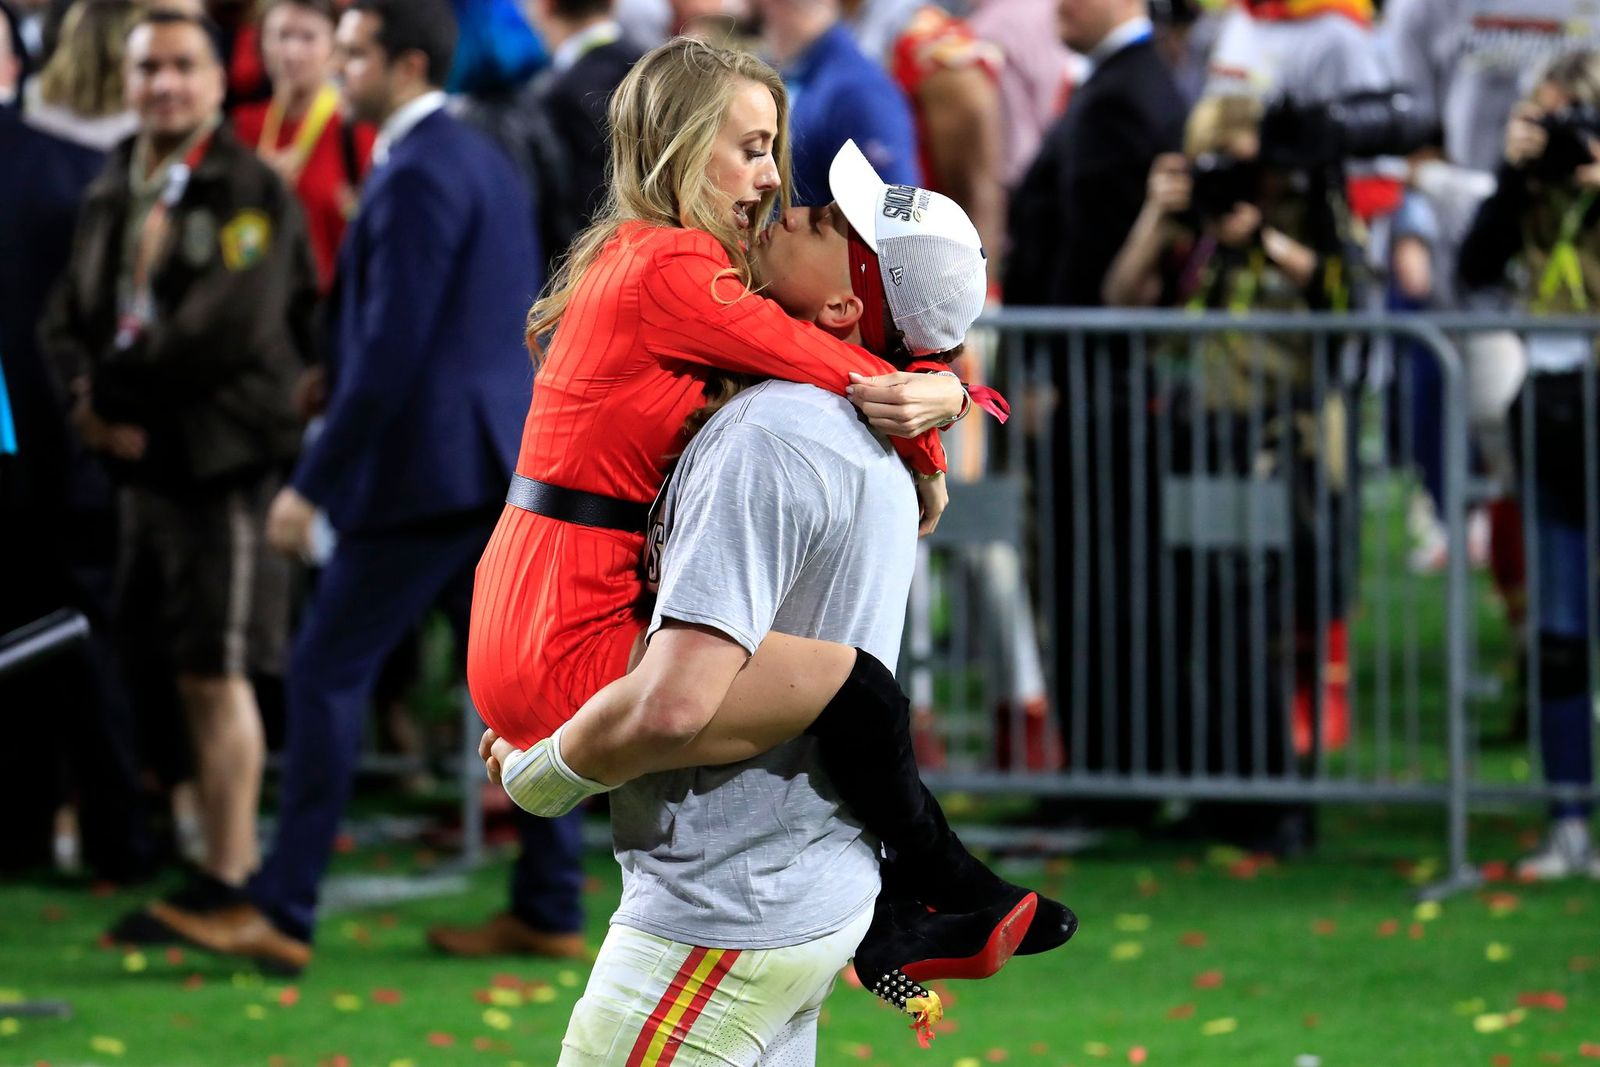 Patrick Mahomes celebrates with Brittany Matthews after defeating the San Francisco 49ers in Super Bowl LIV on February 02, 2020, in Miami, Florida | Photo: Andy Lyons/Getty Images